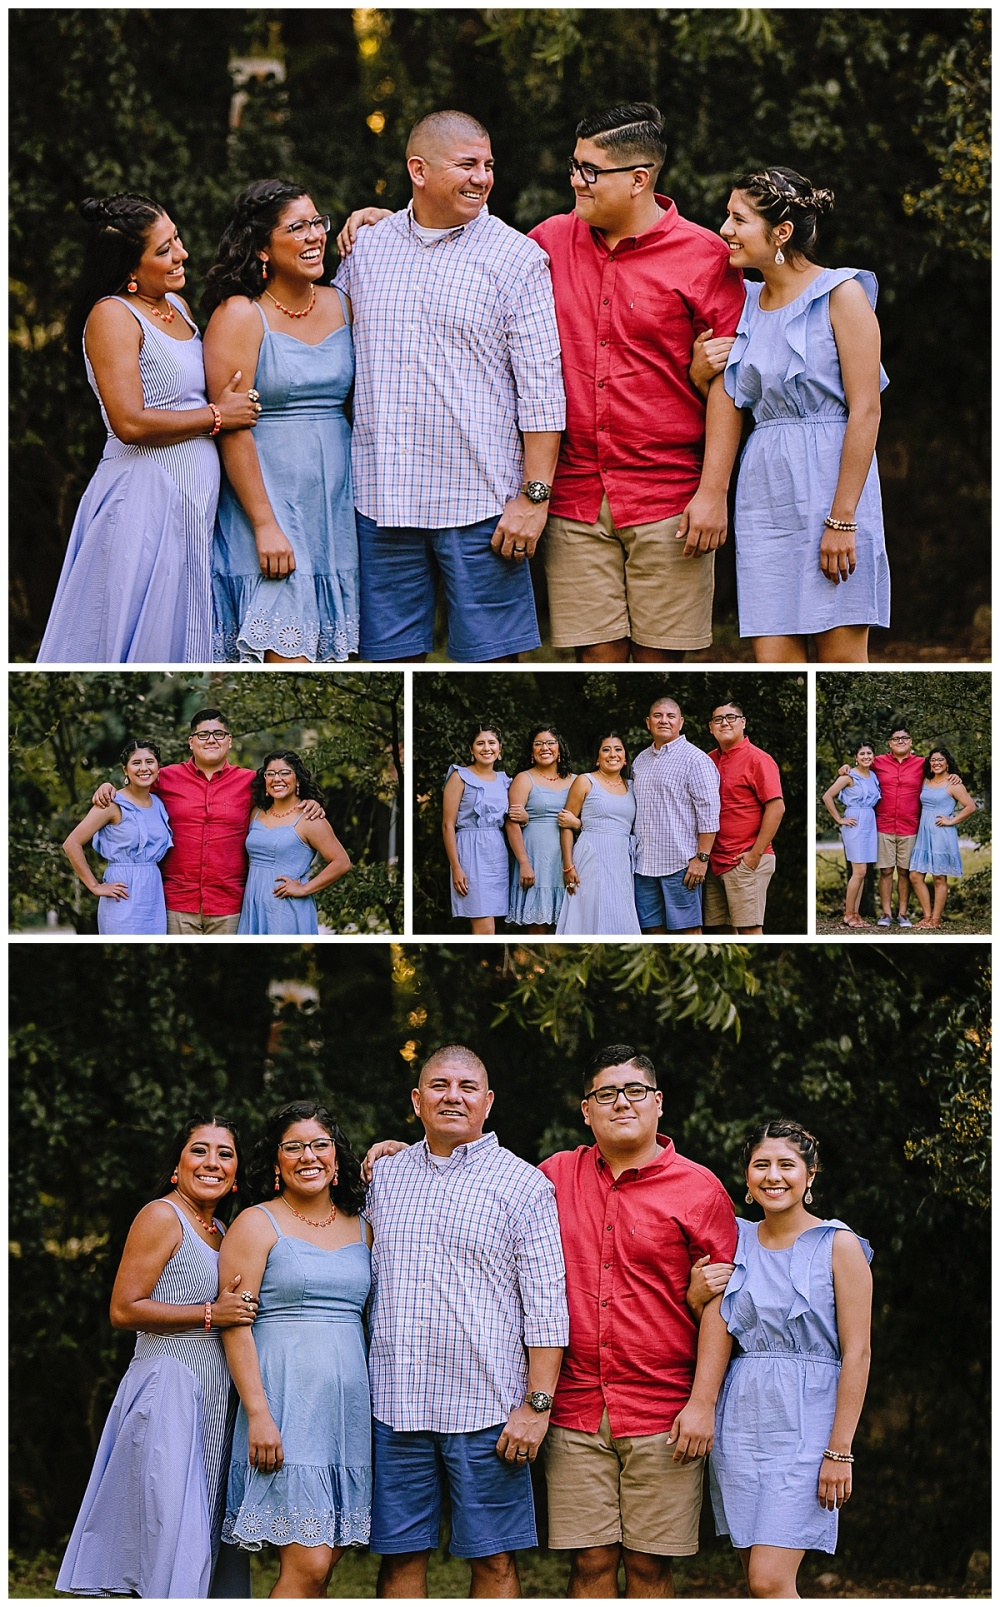 Carly-Barton-Photography-Family-Session-Landa-Park-New-Braunfels-Texas-Benavides_0012.jpg